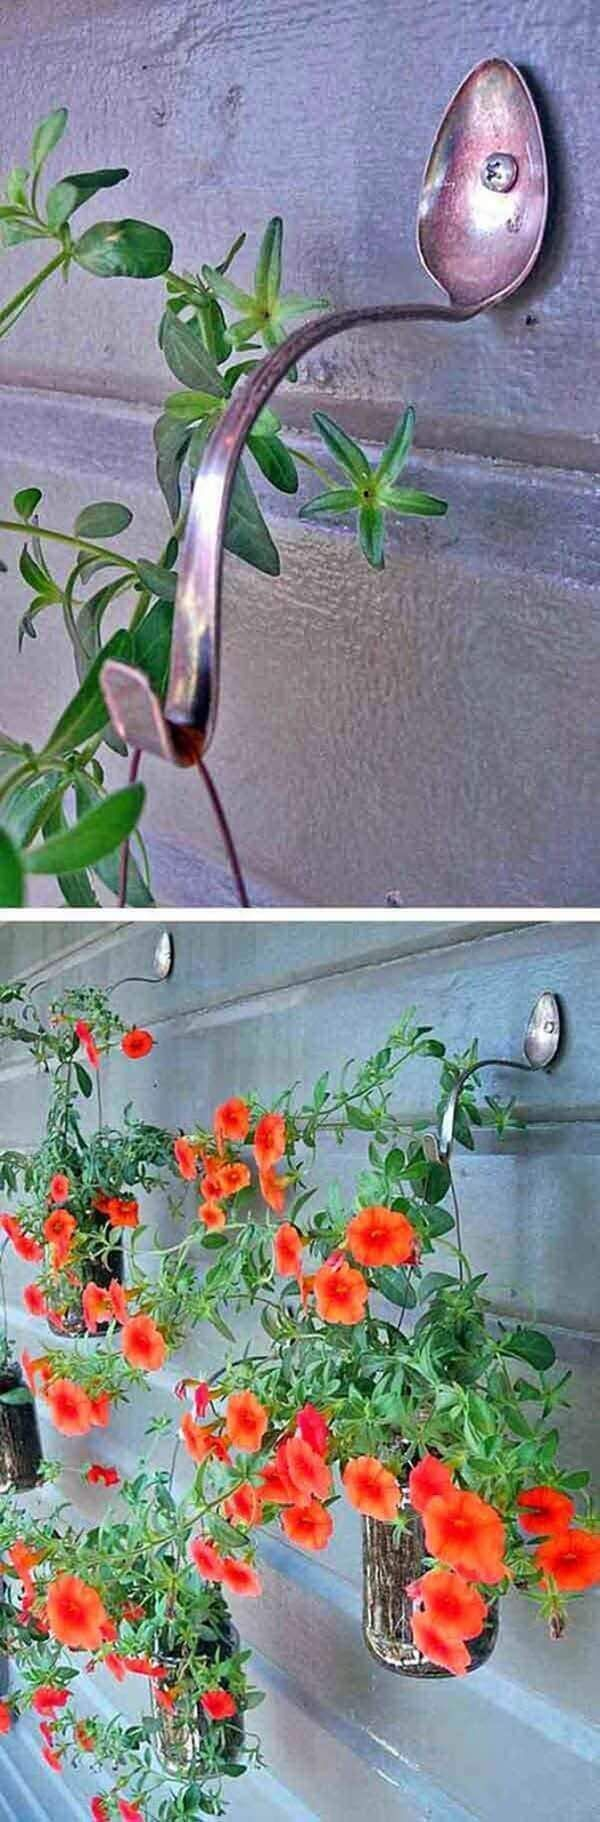 Hanging Basket Spoon Hooks, Best Ideas for Hanging Baskets, Front Porch Planters, Flower Baskets, Vegetables, Flowers, Plants, Planters, Tutorial, DIY, Garden Project Ideas, Backyards, DIY Garden Decorations, Upcycled, Recycled, How to, Hanging Planter, Planter, Container Gardening, DIY, Vertical Gardening, Vertical Gardening #containergardeningideashangingbaskets